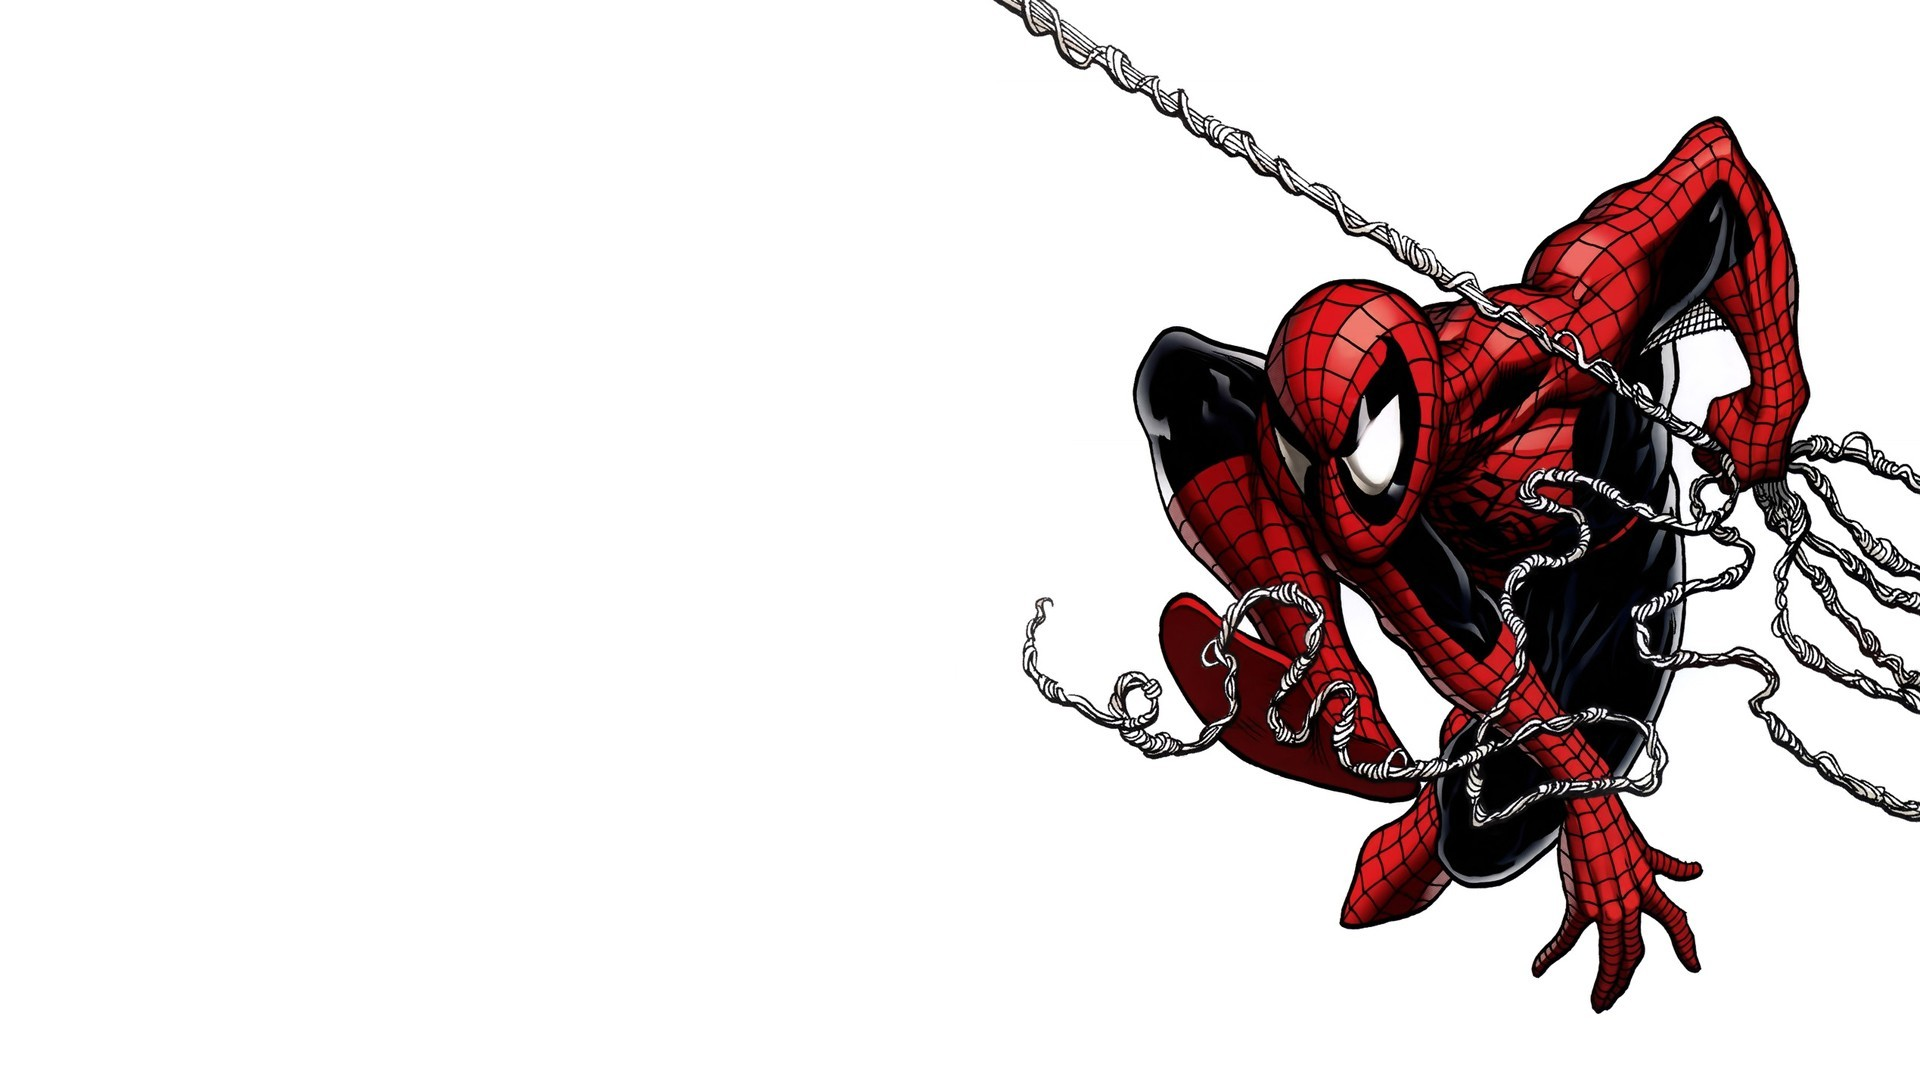 Comics spider-man marvel wallpaper | AllWallpaper.in #6733 ...